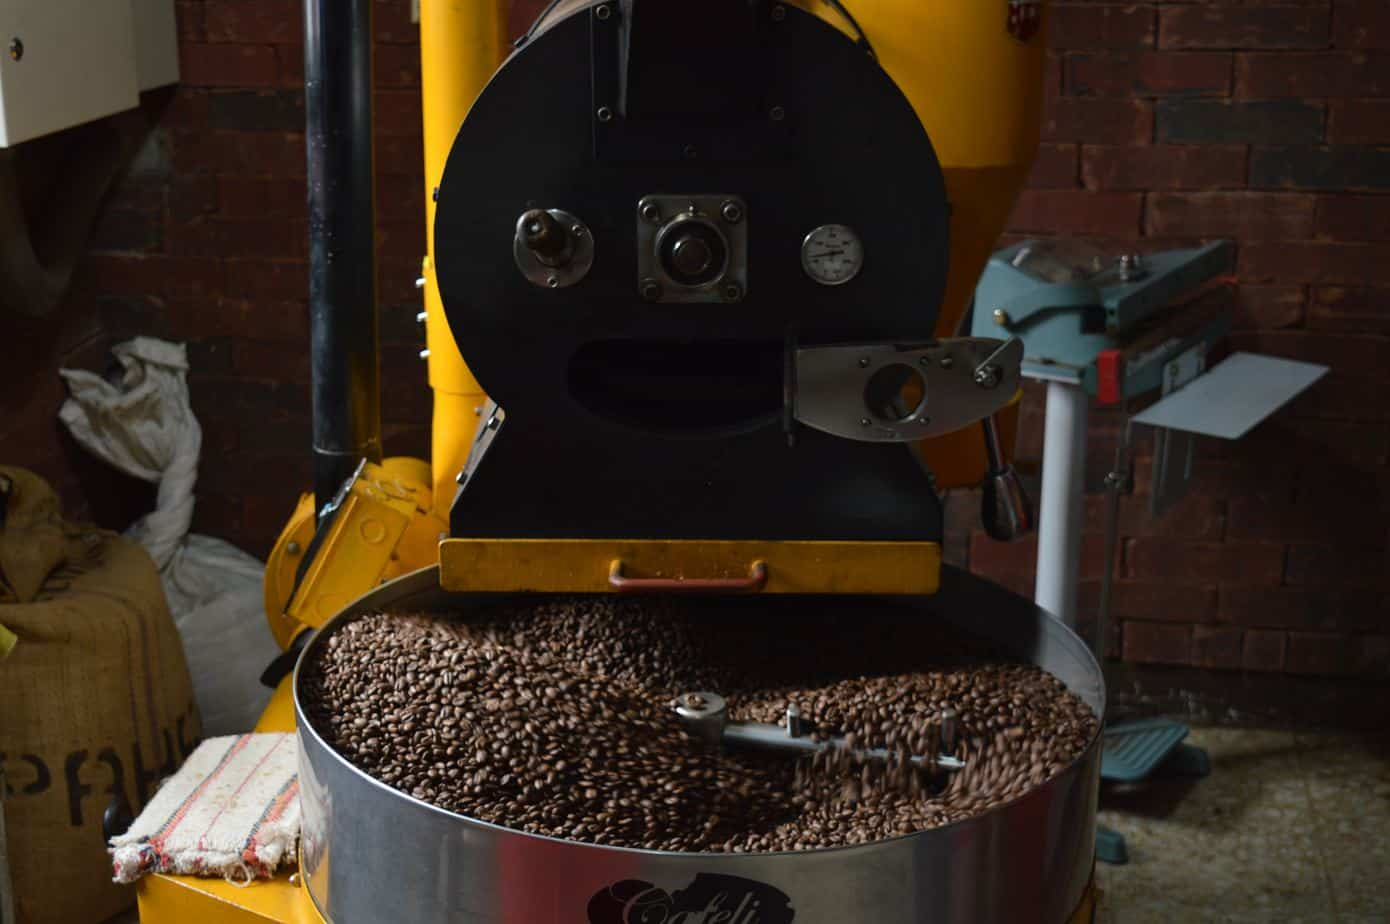 A Coffee Roaster Roasting Coffee Beans